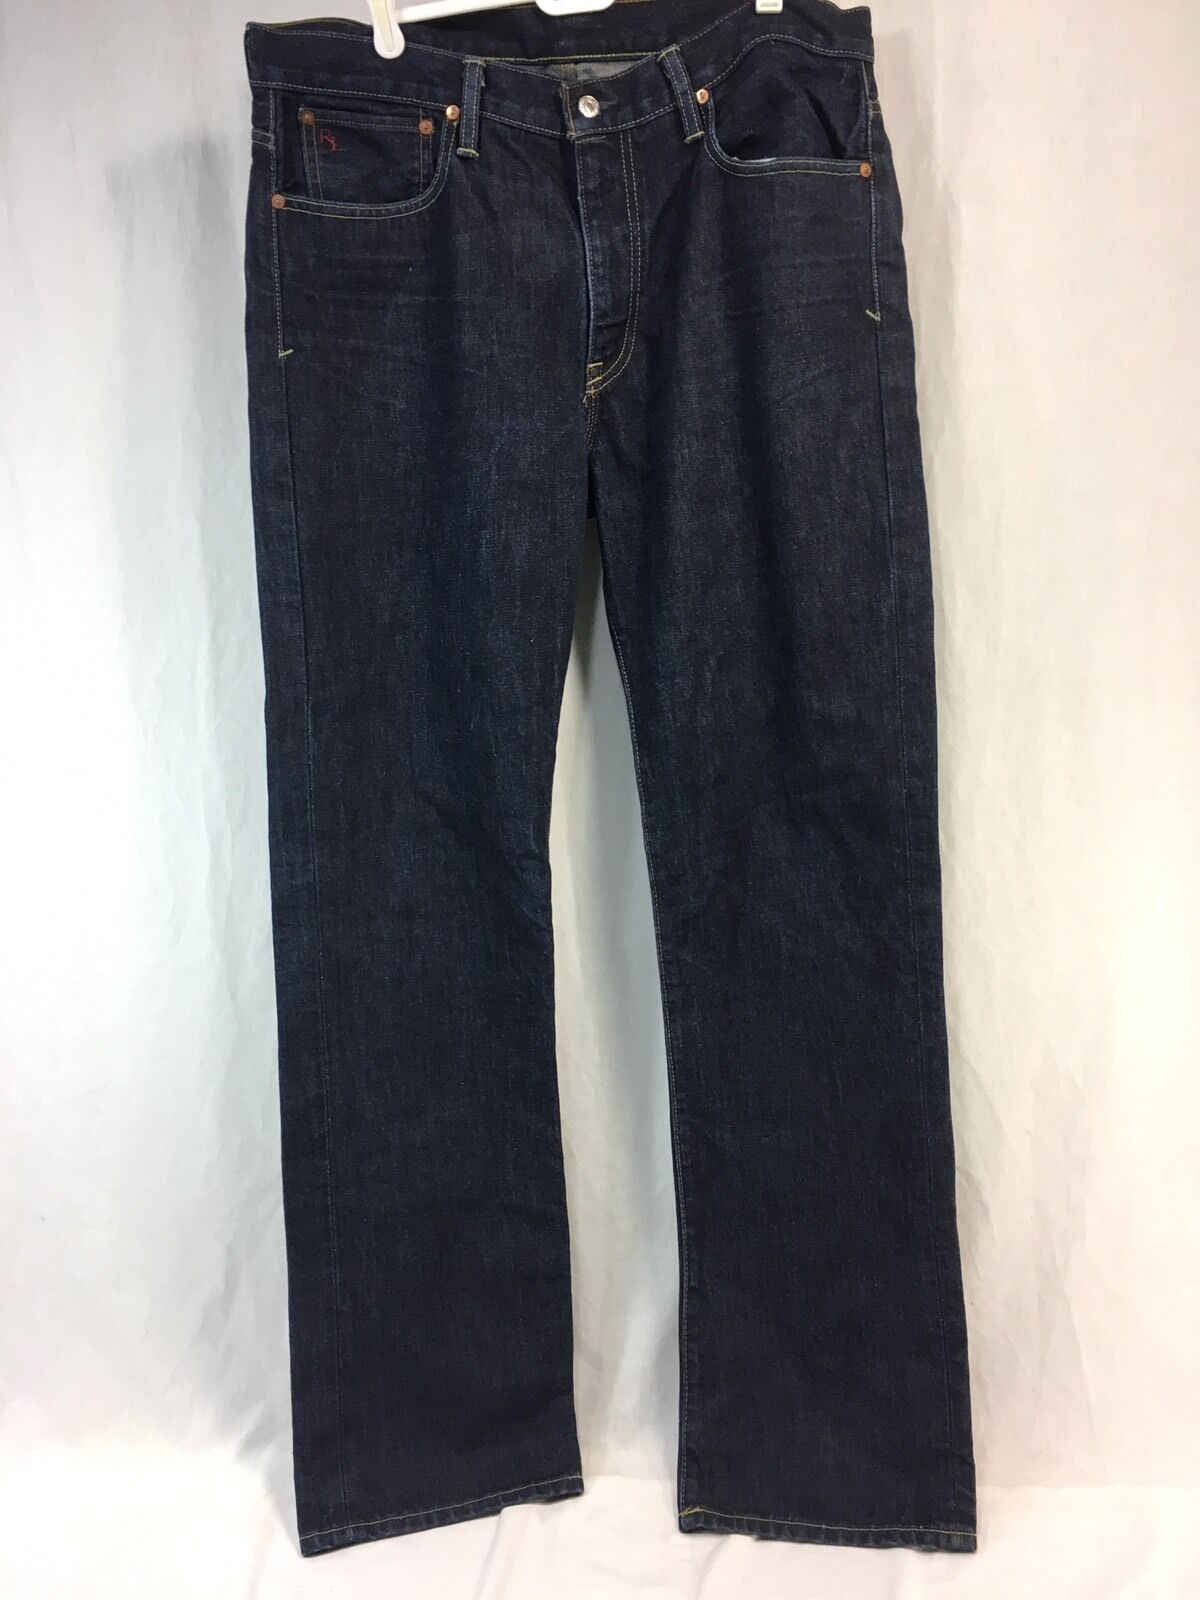 POLO RALPH LAUREN VINTAGE WASH RIVERSIDE Jeans Mens 38 35 Denim COTTON 34 34